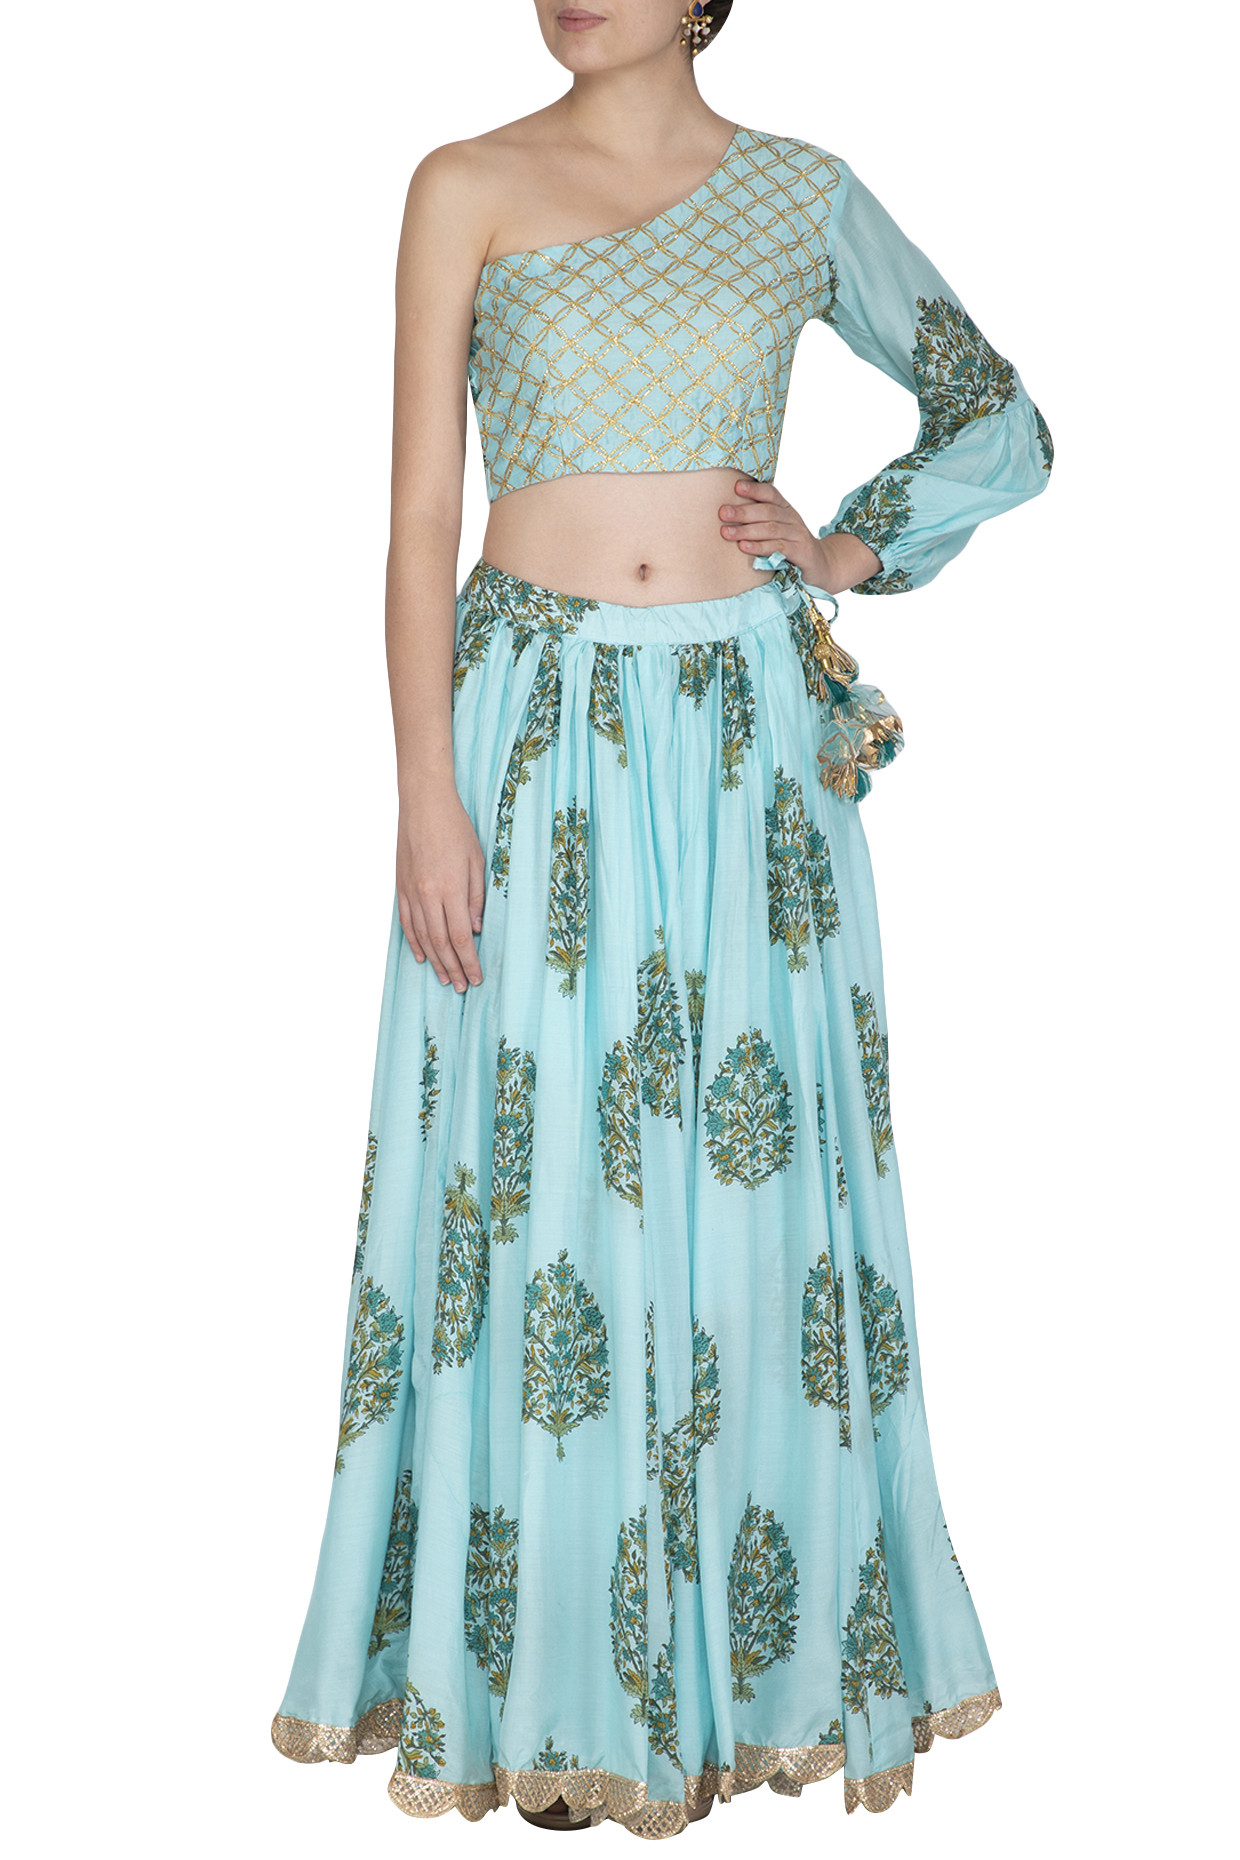 Blue Block Printed One Shoulder Top With Skirt by Yuvvrani Jaipur